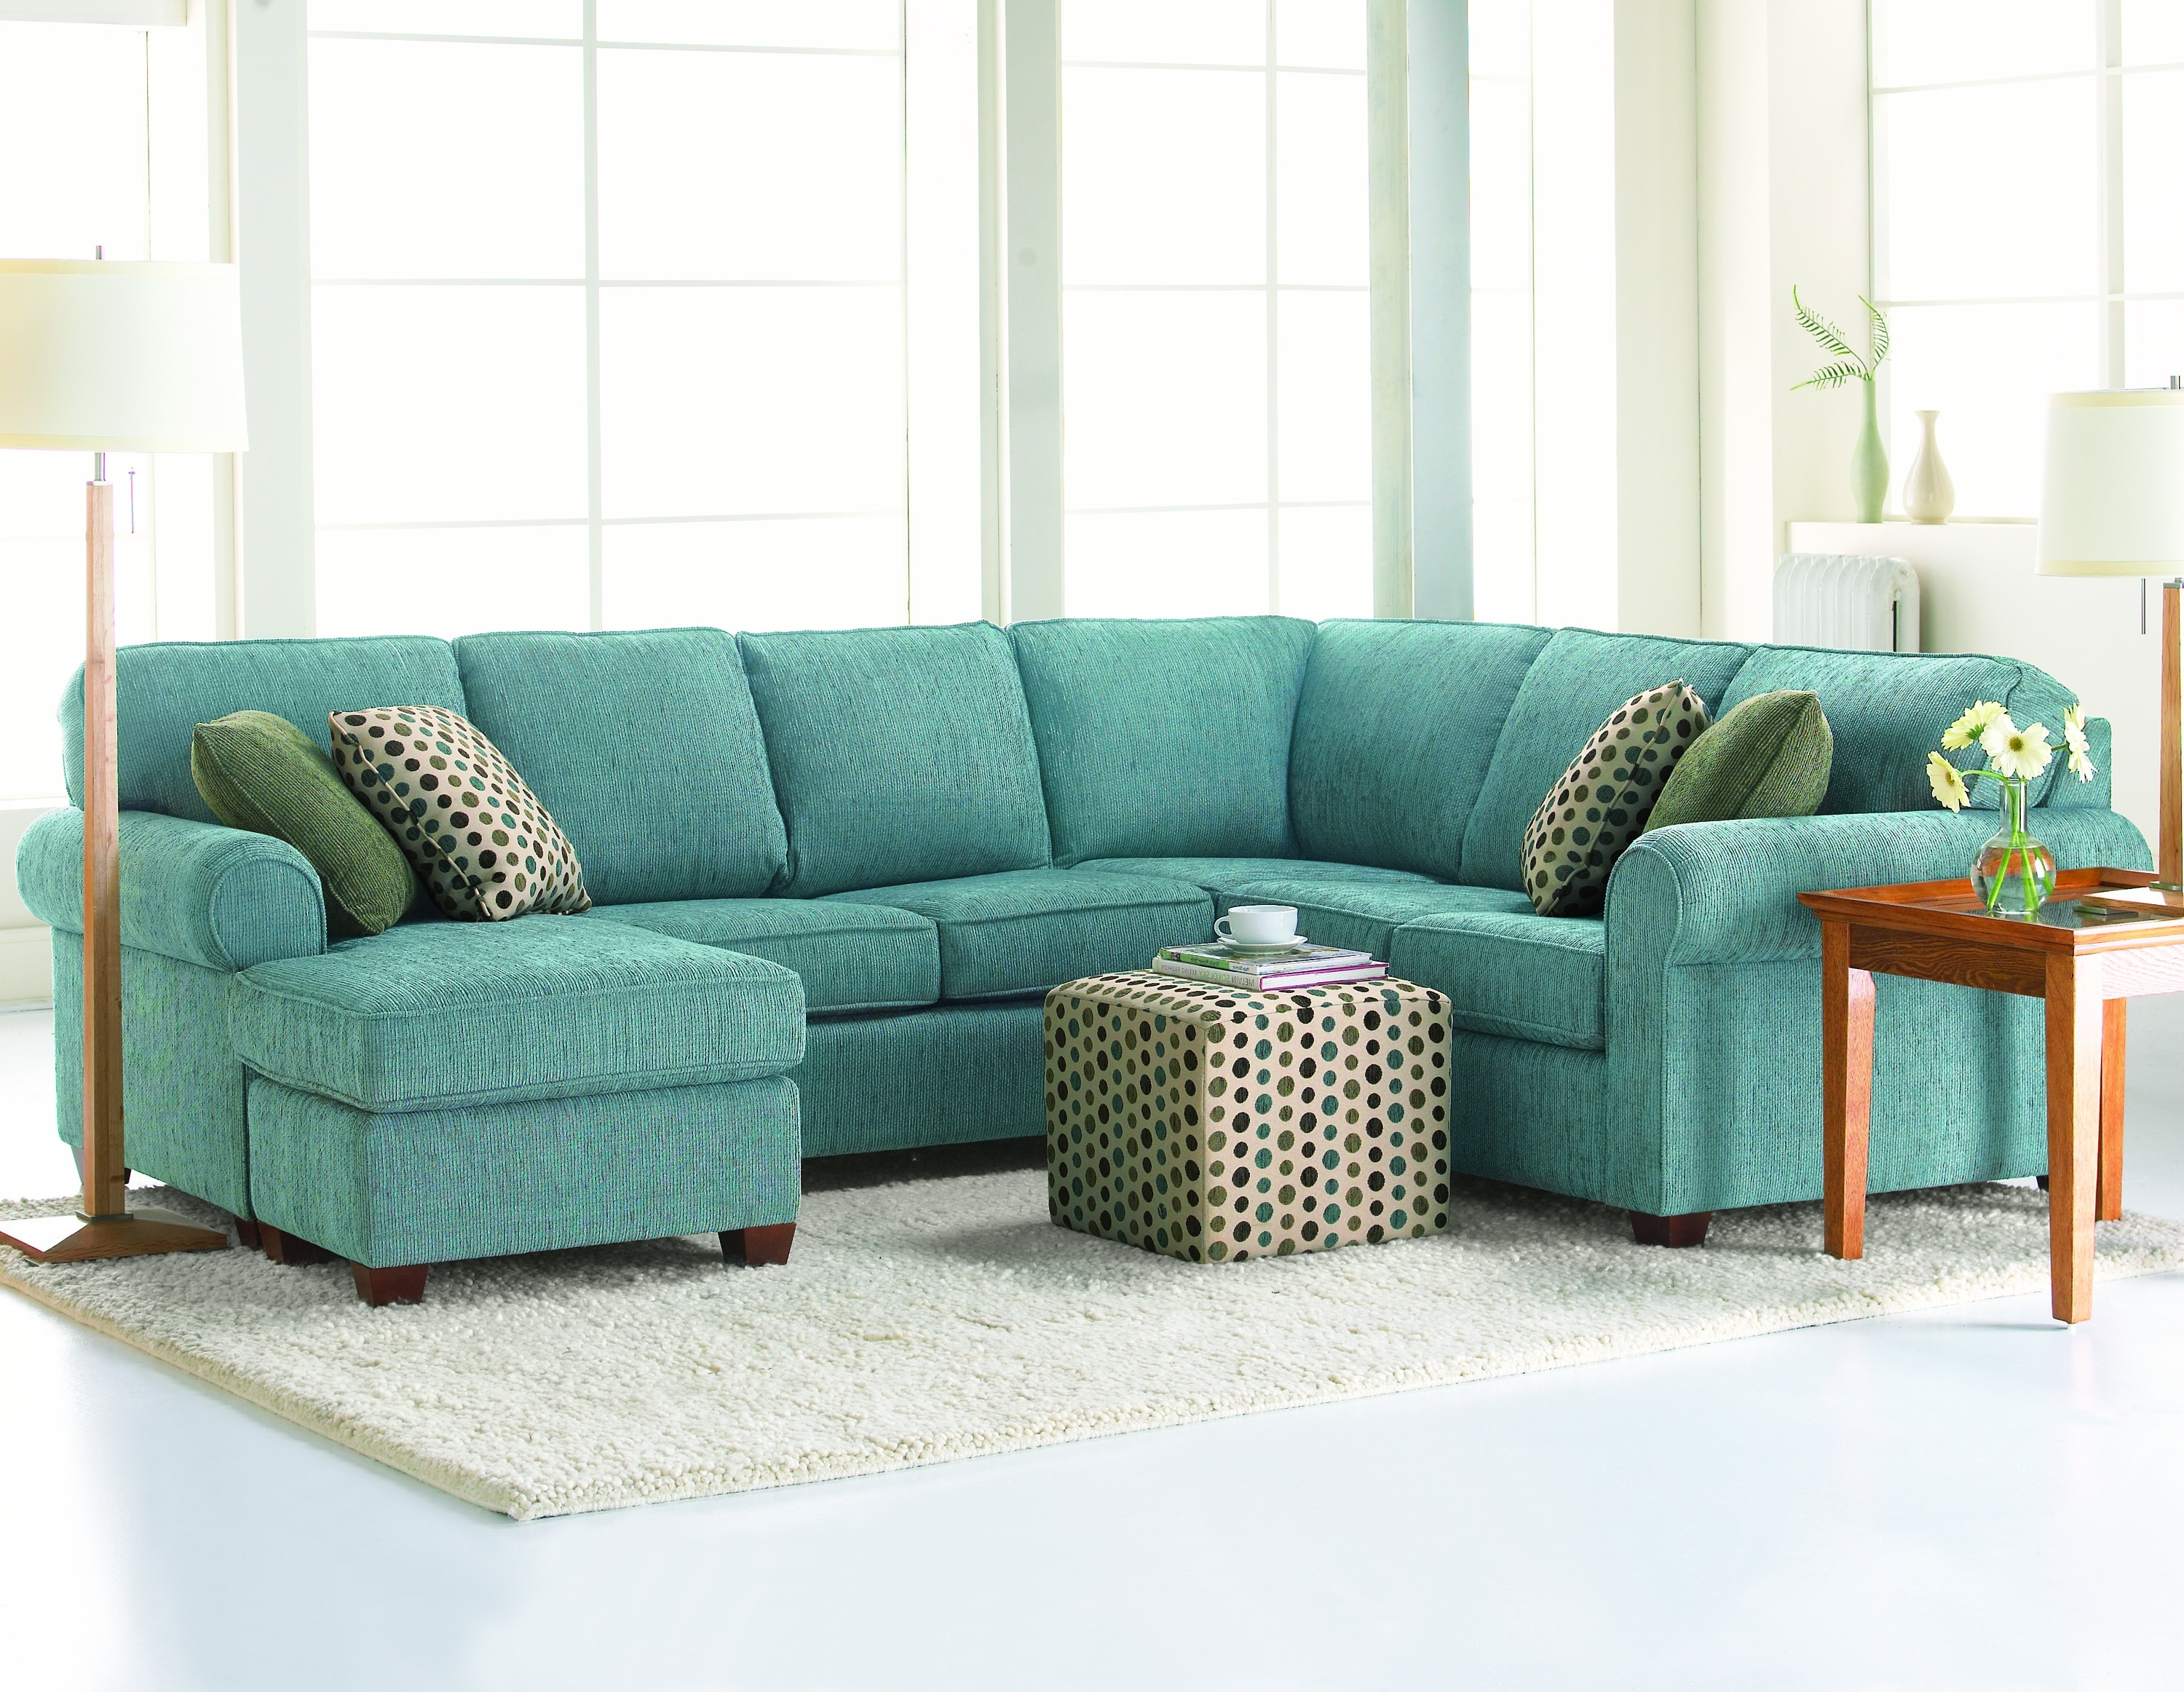 Recent Sectional Sofas – Thompson Brothers Furniture Within Ontario Sectional Sofas (View 3 of 20)